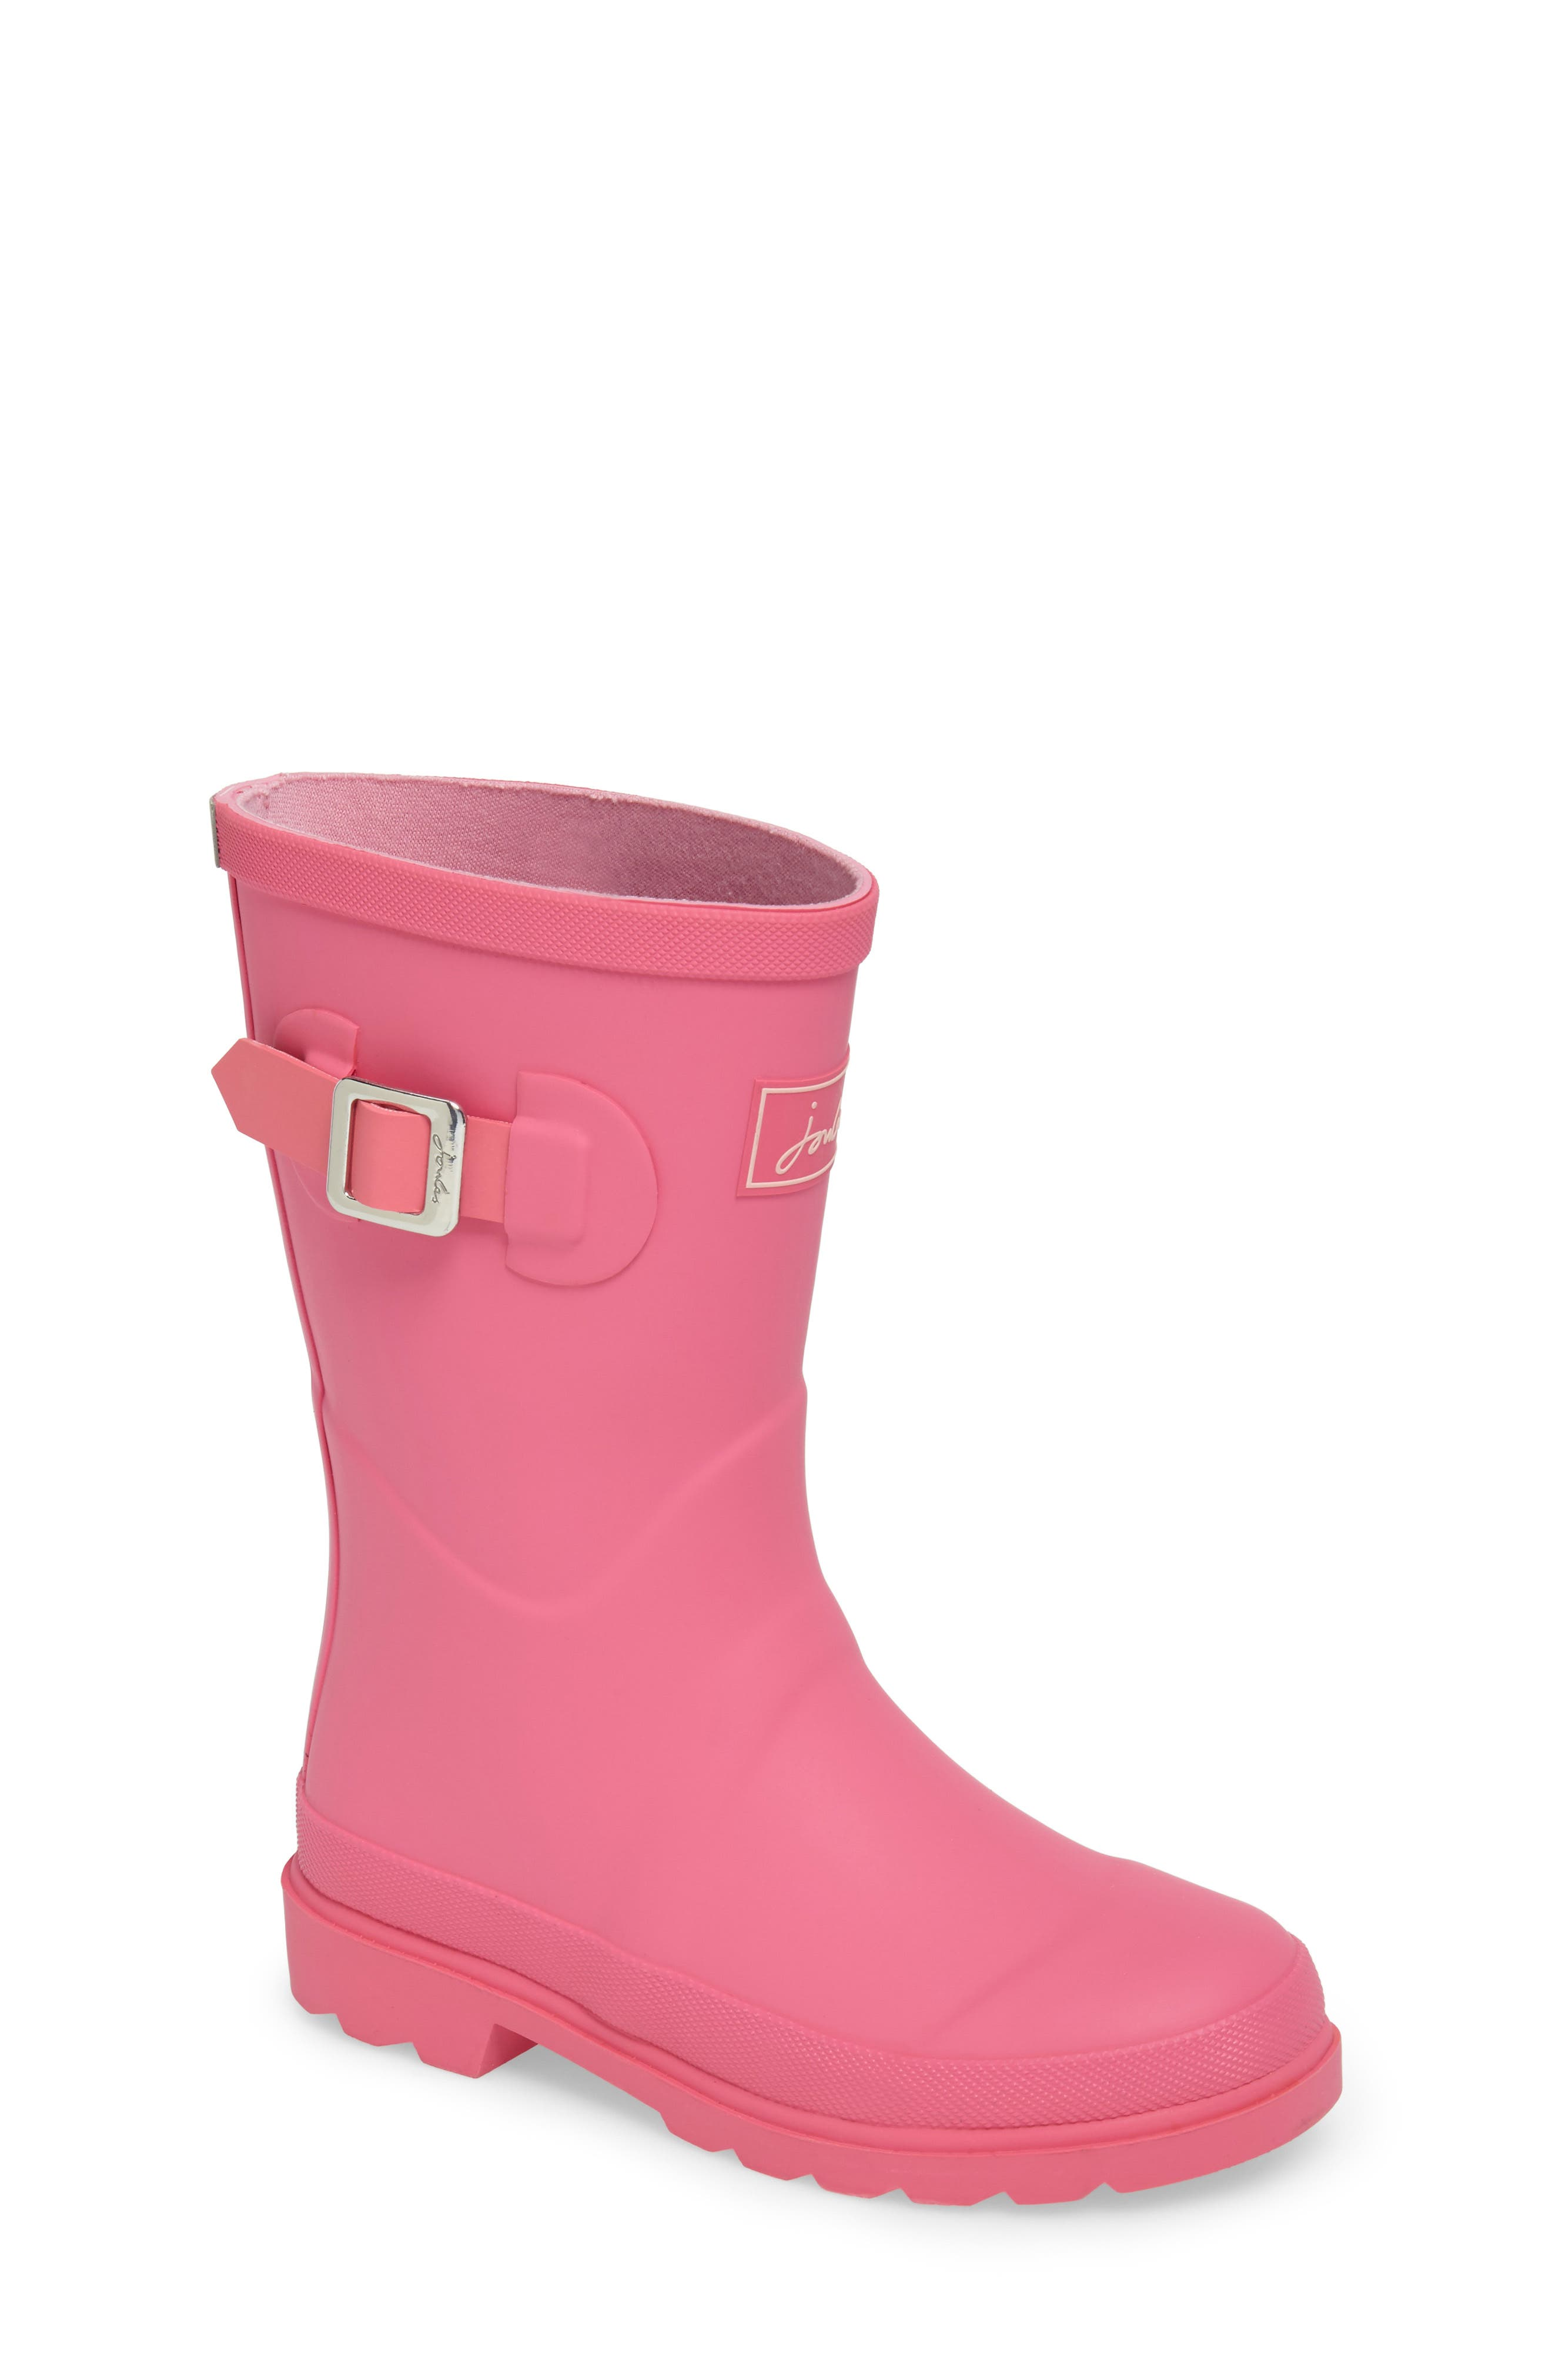 Joules Welly Matte Waterproof Rain Boot (Toddler, Little Kid & Big Kid)